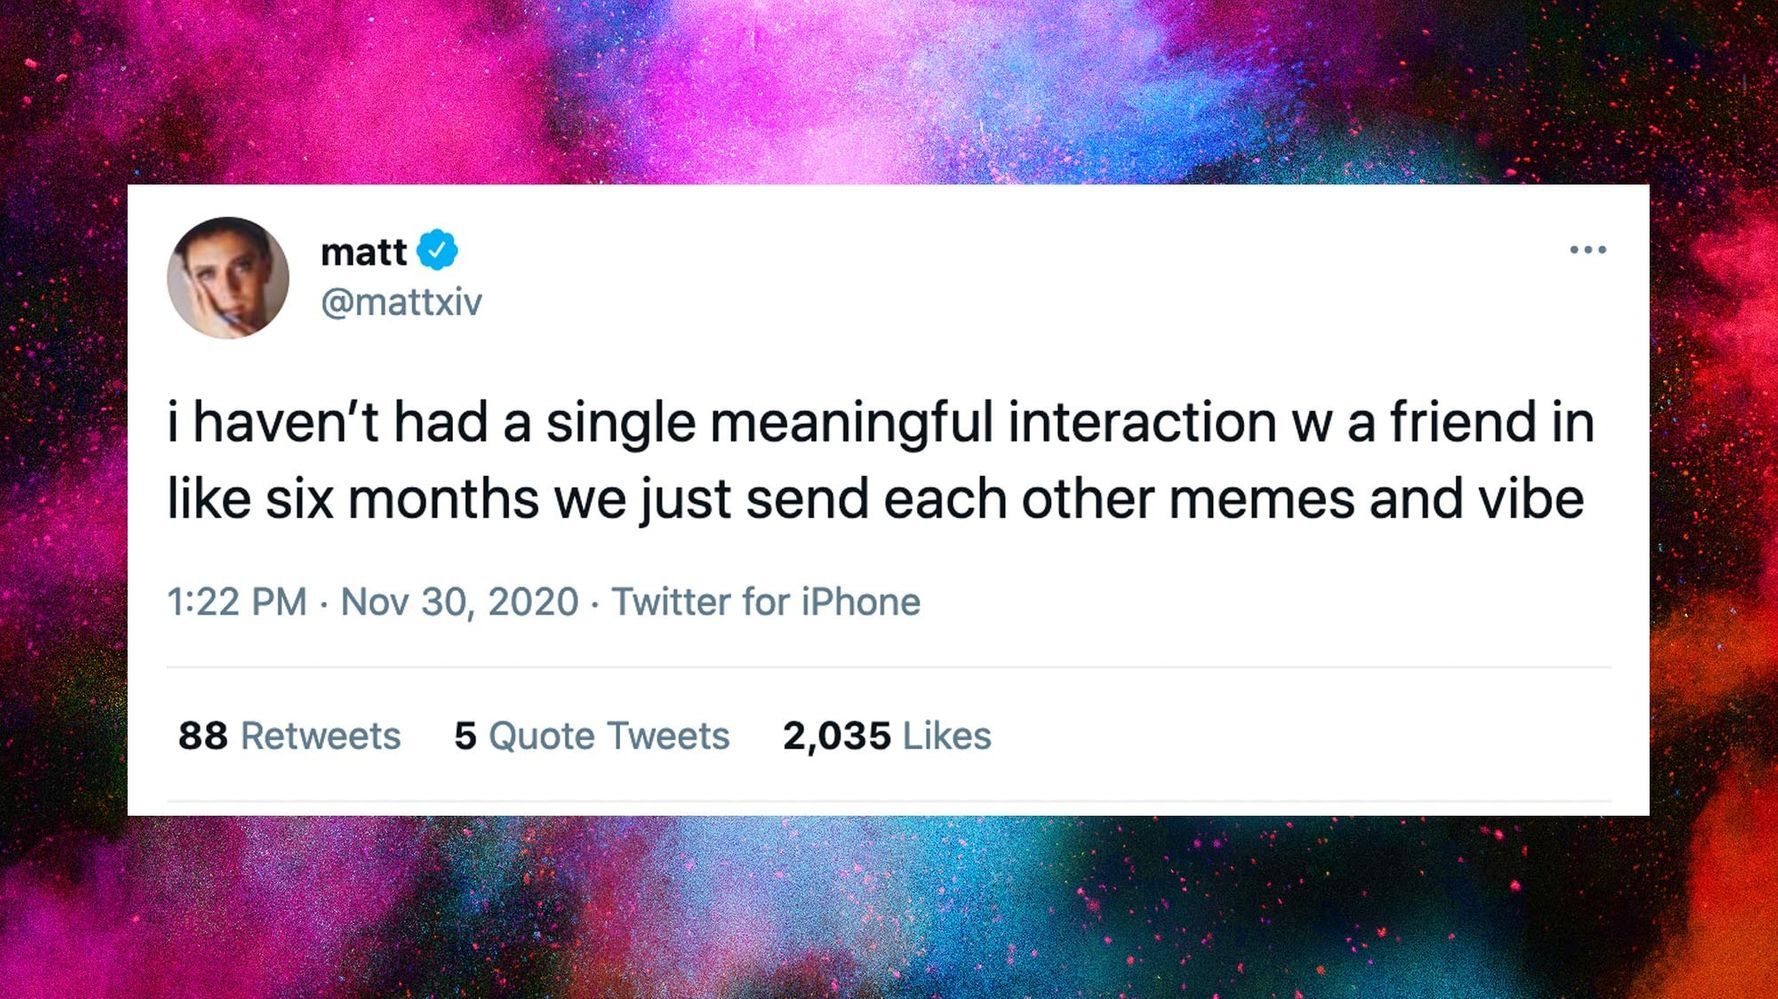 Let's Normalize Sending Memes During Hard Times To Maintain Friendships